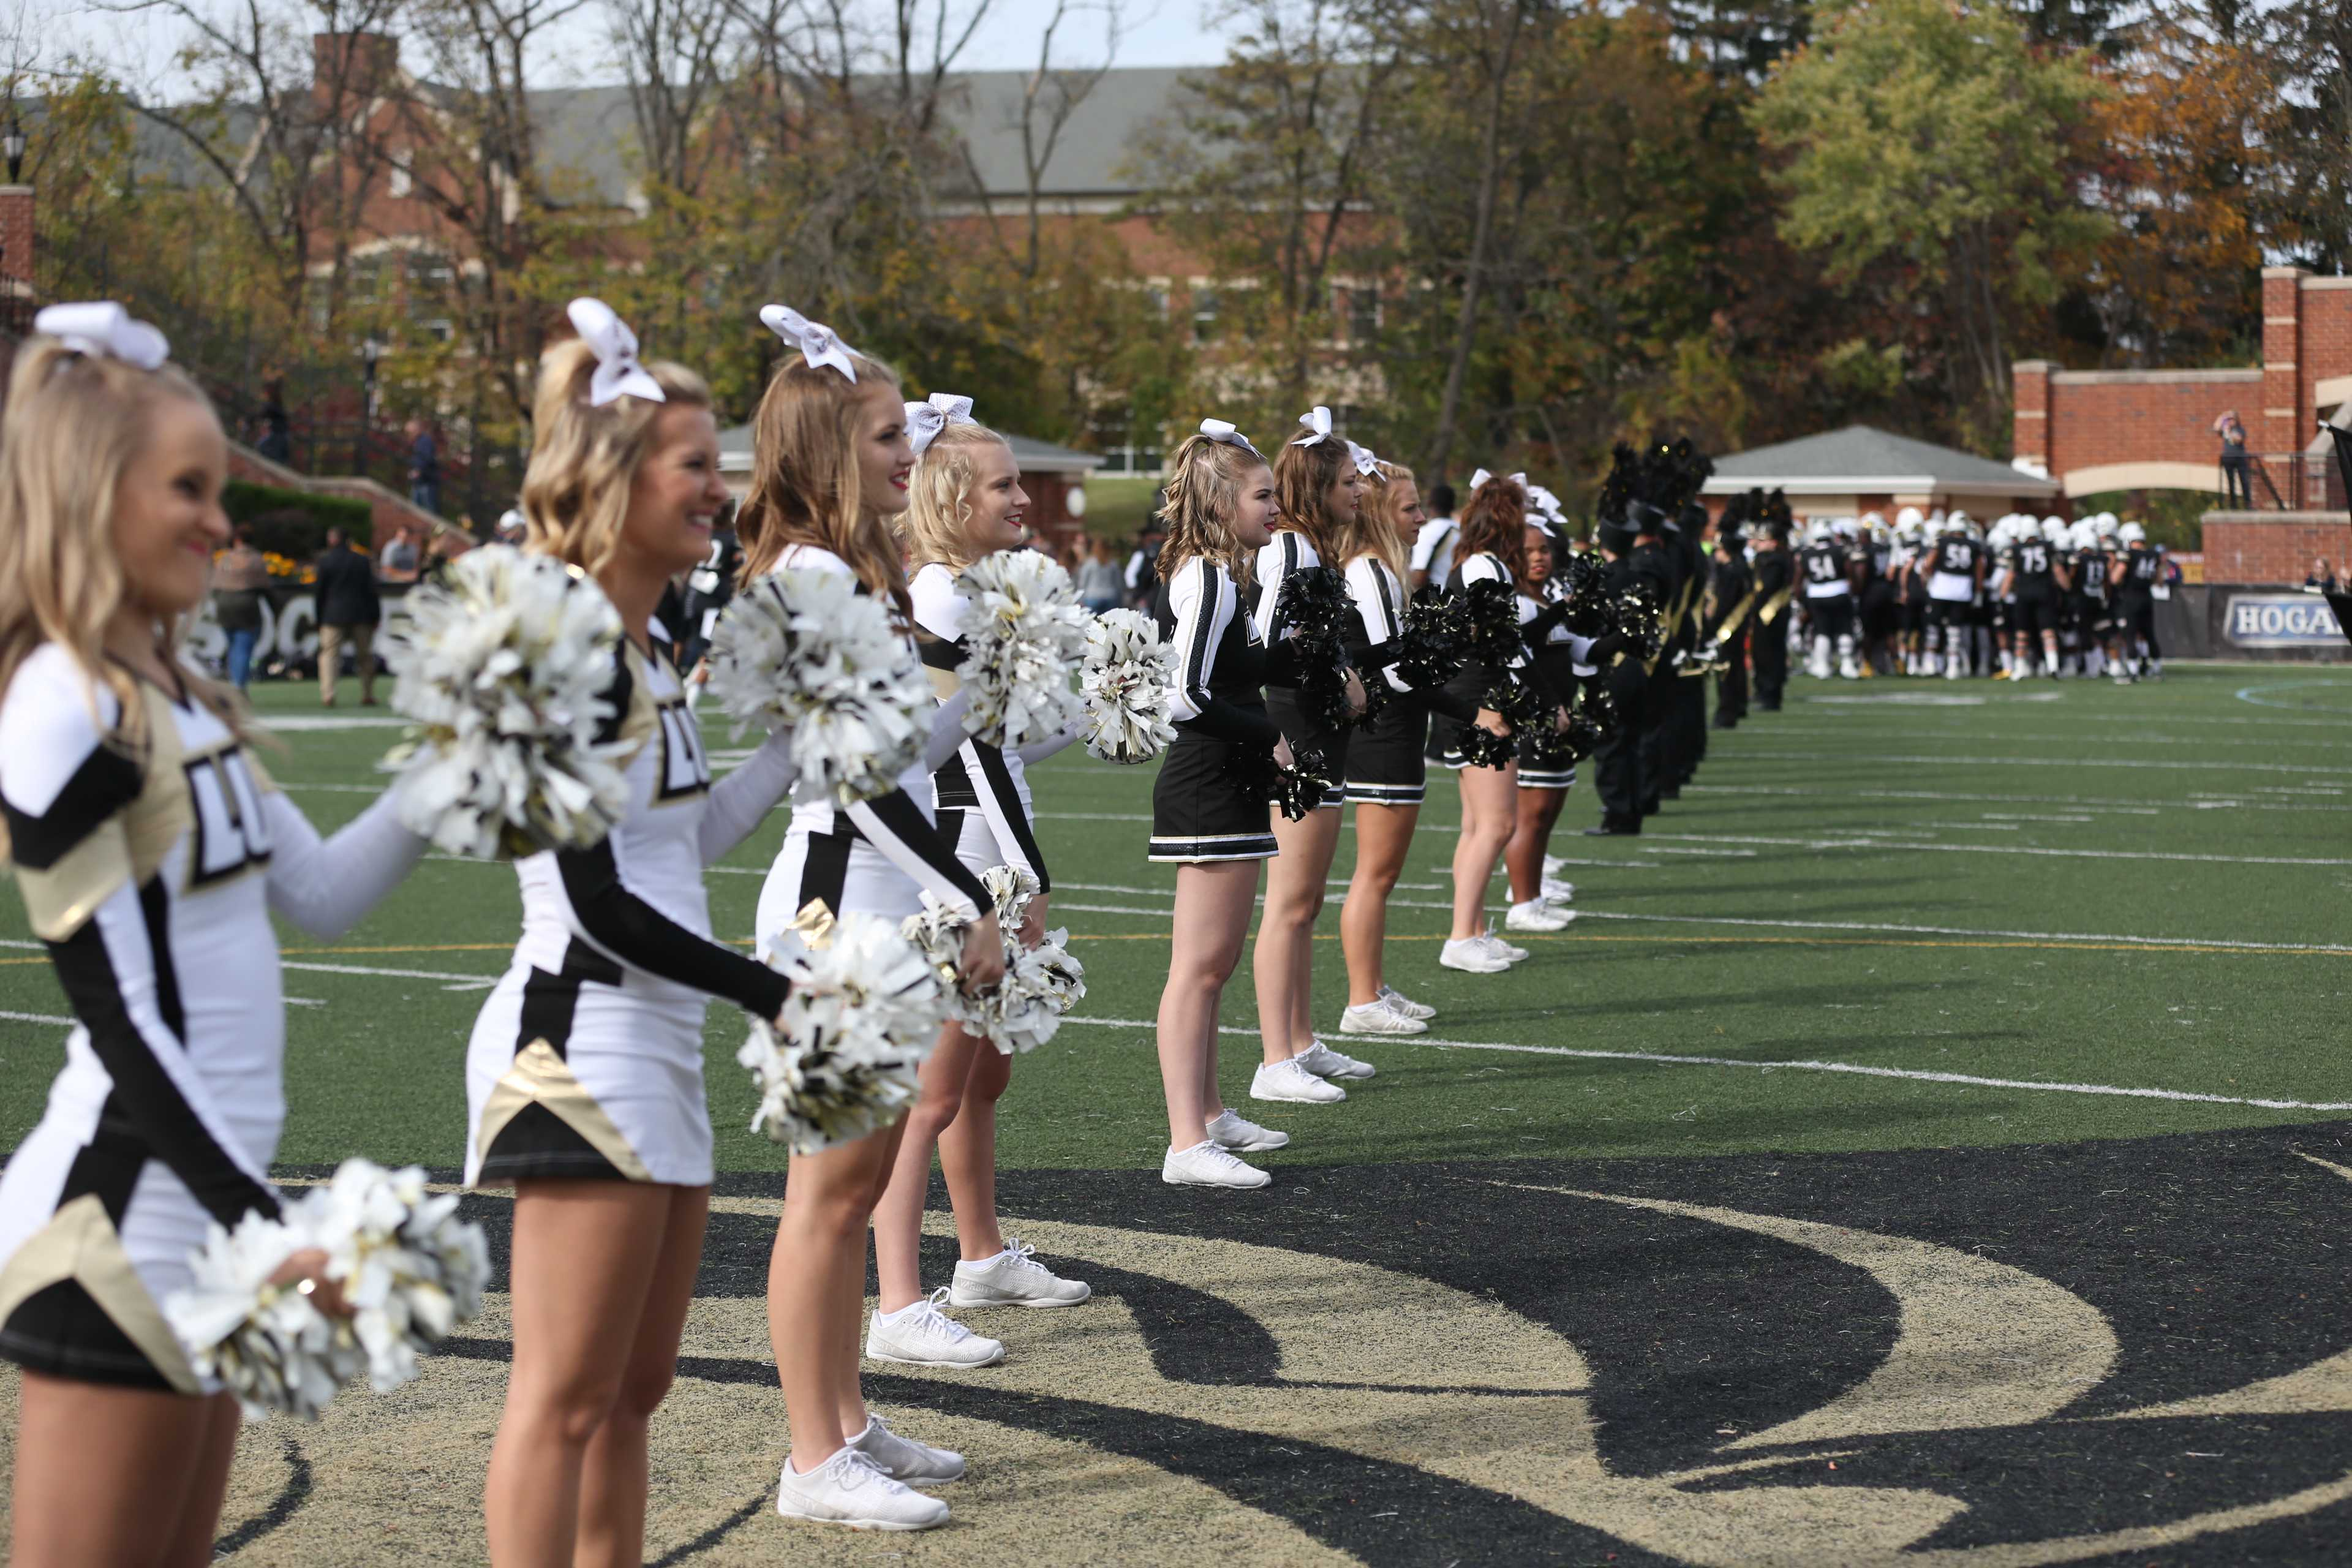 Lindenwood cheerleaders show their school spirit at a 2016 football game against Missouri Southern State University  Photo by Carly Fristoe